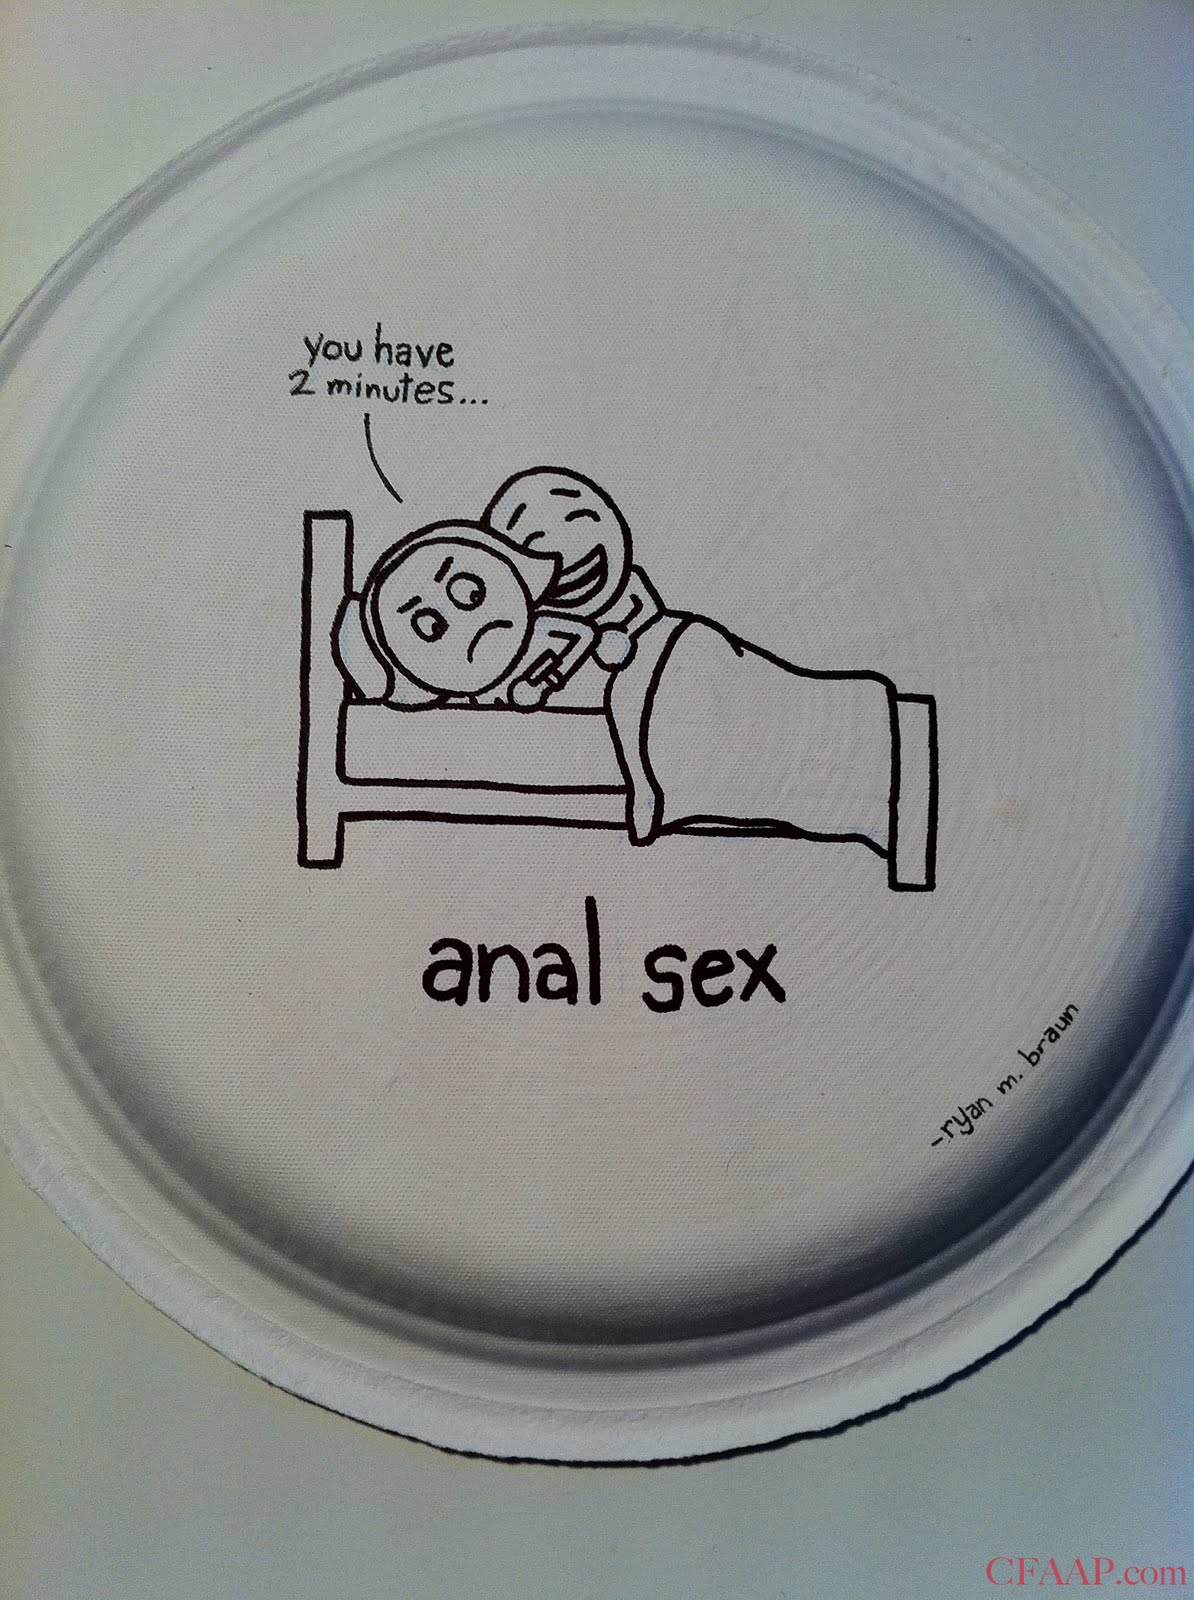 practicing anal sex create a sign